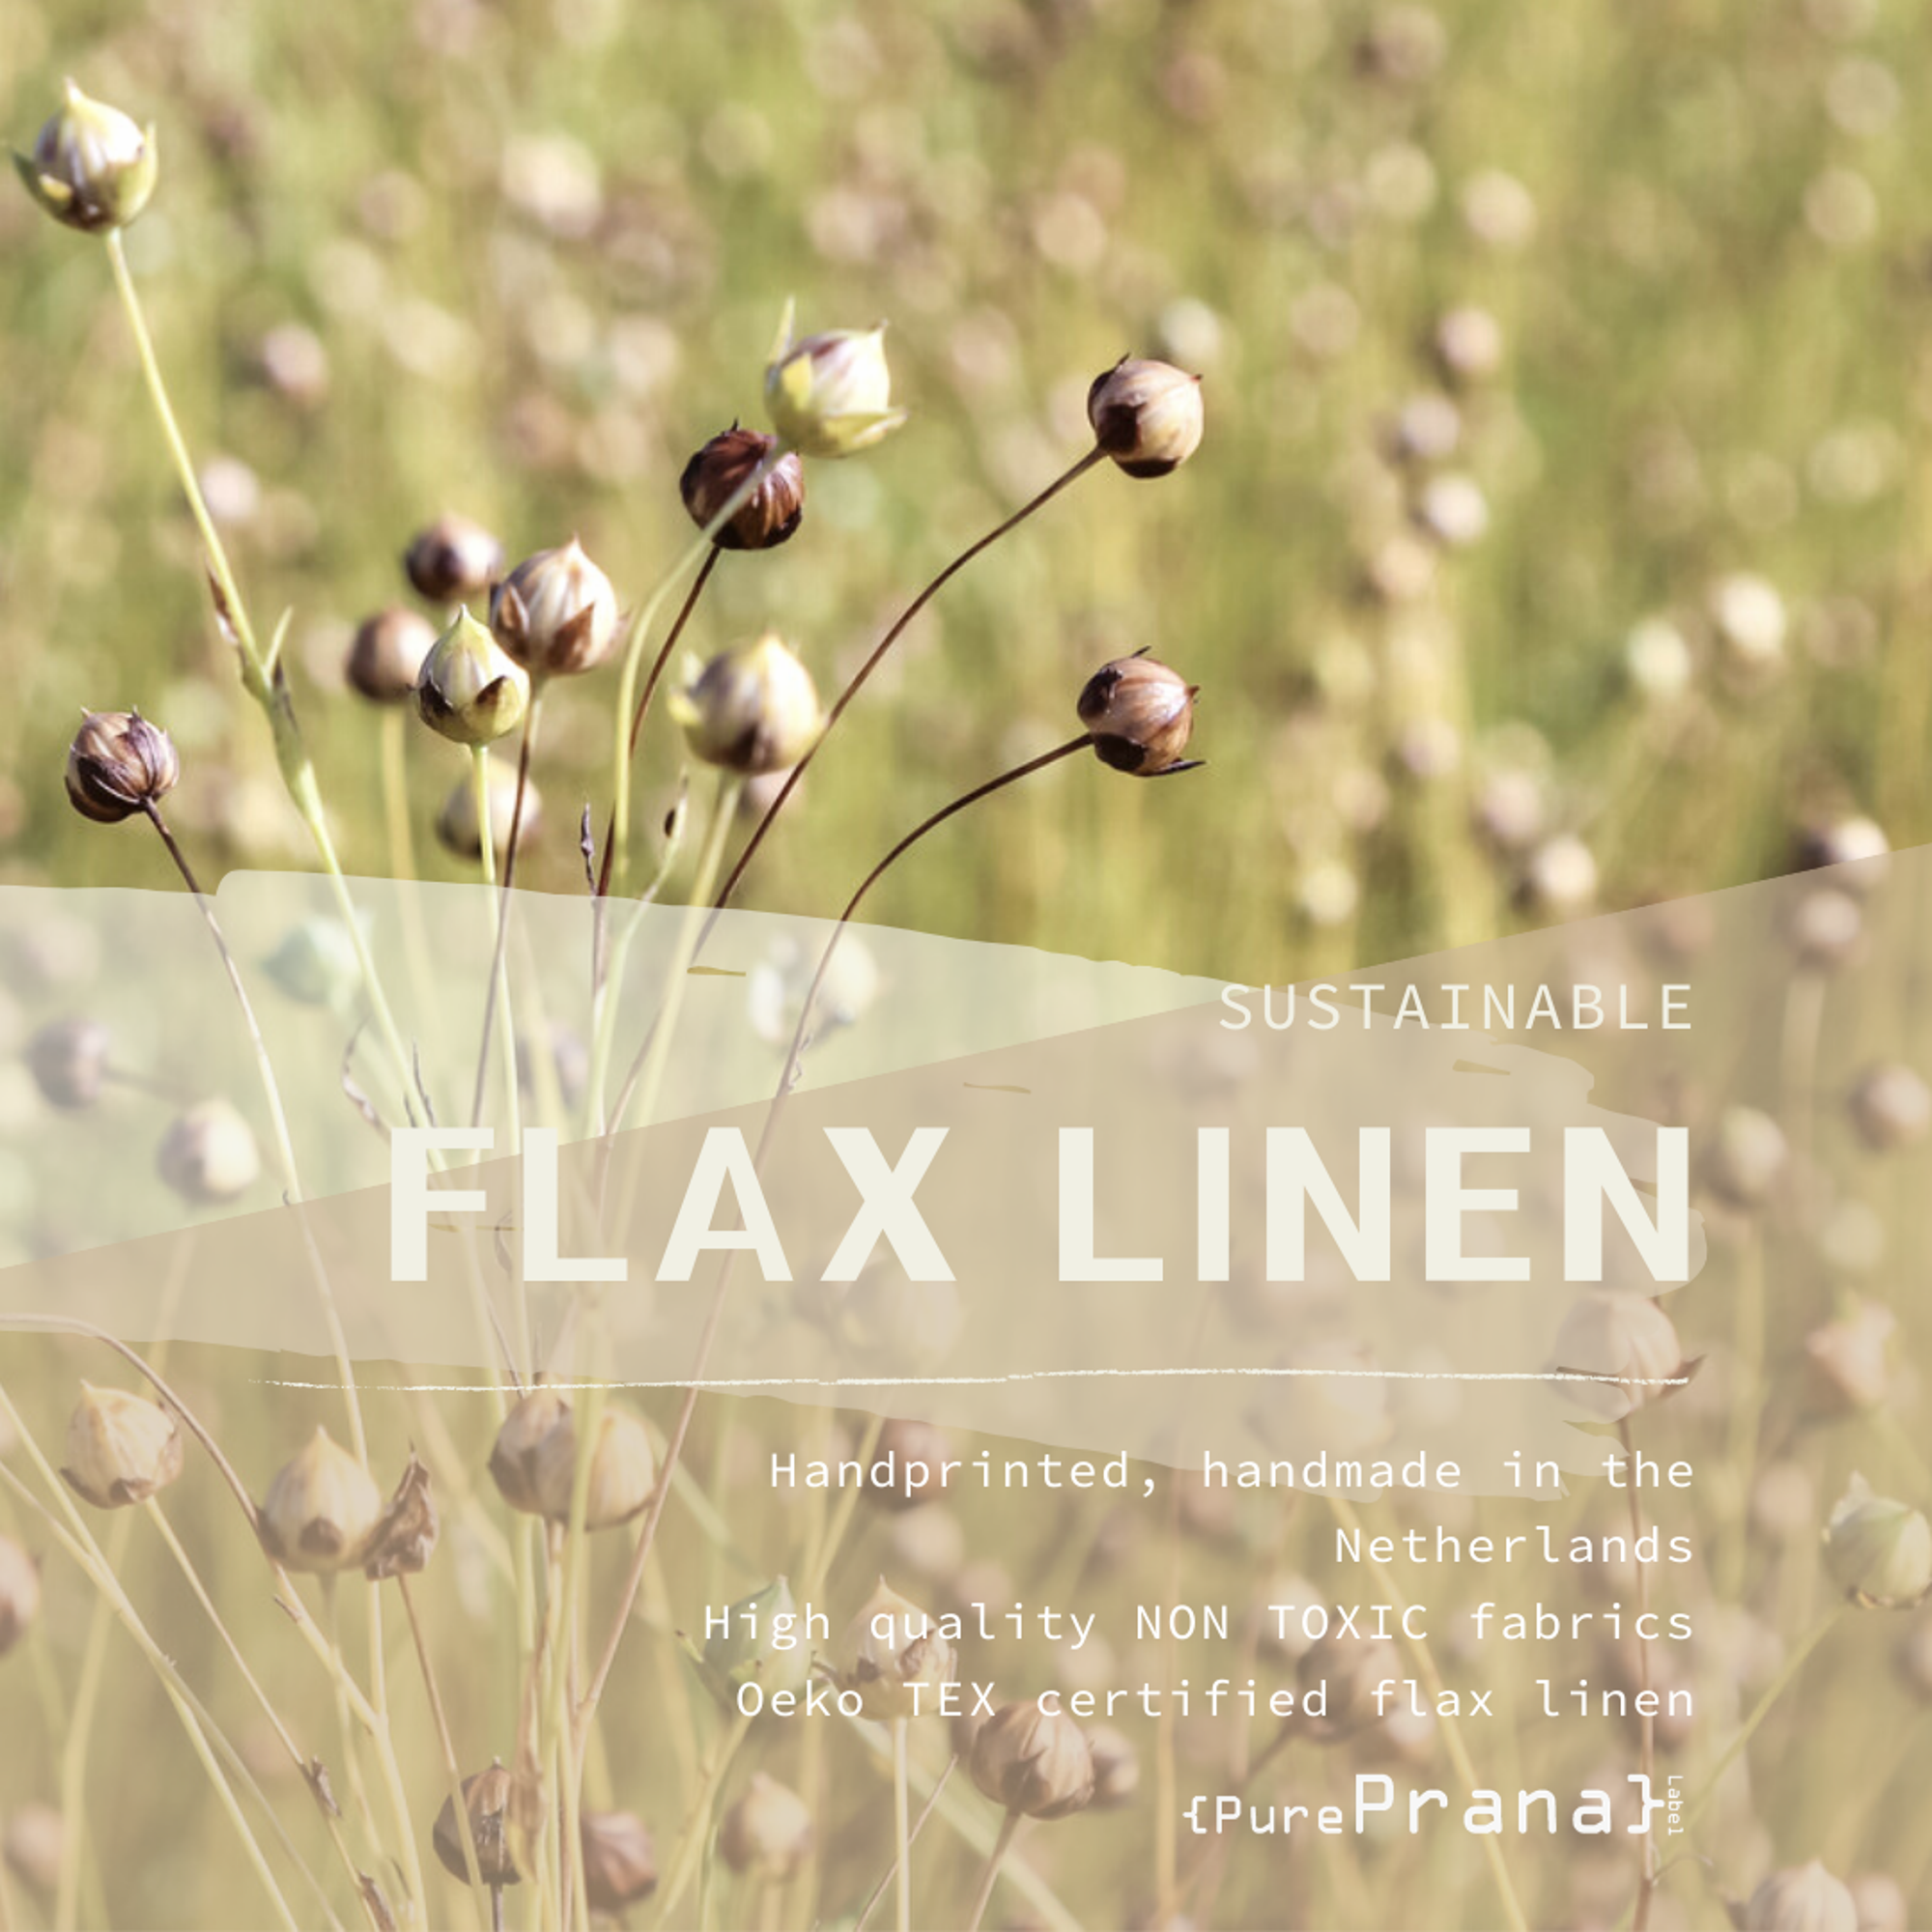 Flax linen, sustainable and eco friendly